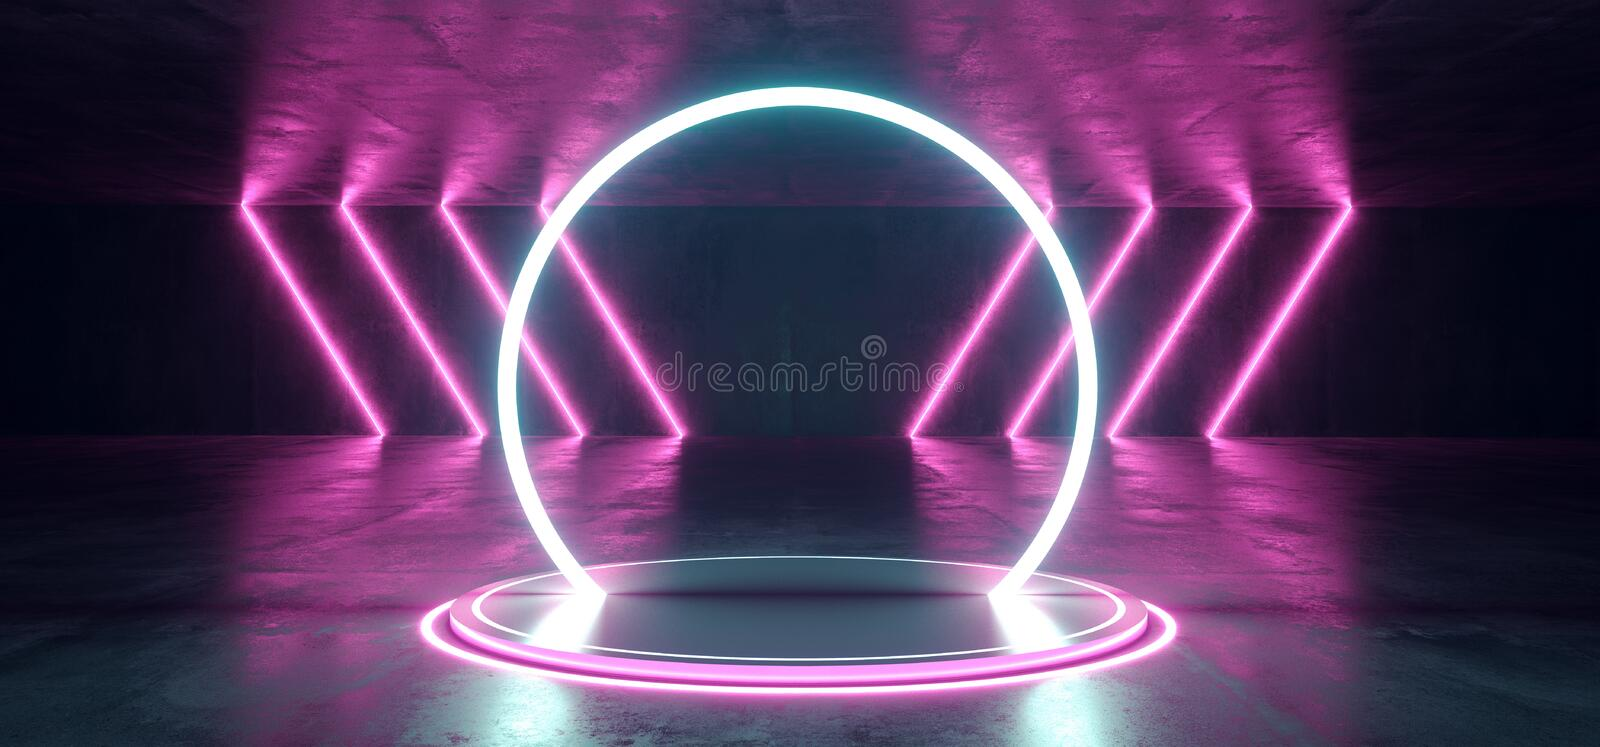 Neon Stage Showroom Concept Dark Sci Fi Alien Grunge Concrete Room Reflective Texture And Abstract Pink Blue Purple Abstract Led vector illustration